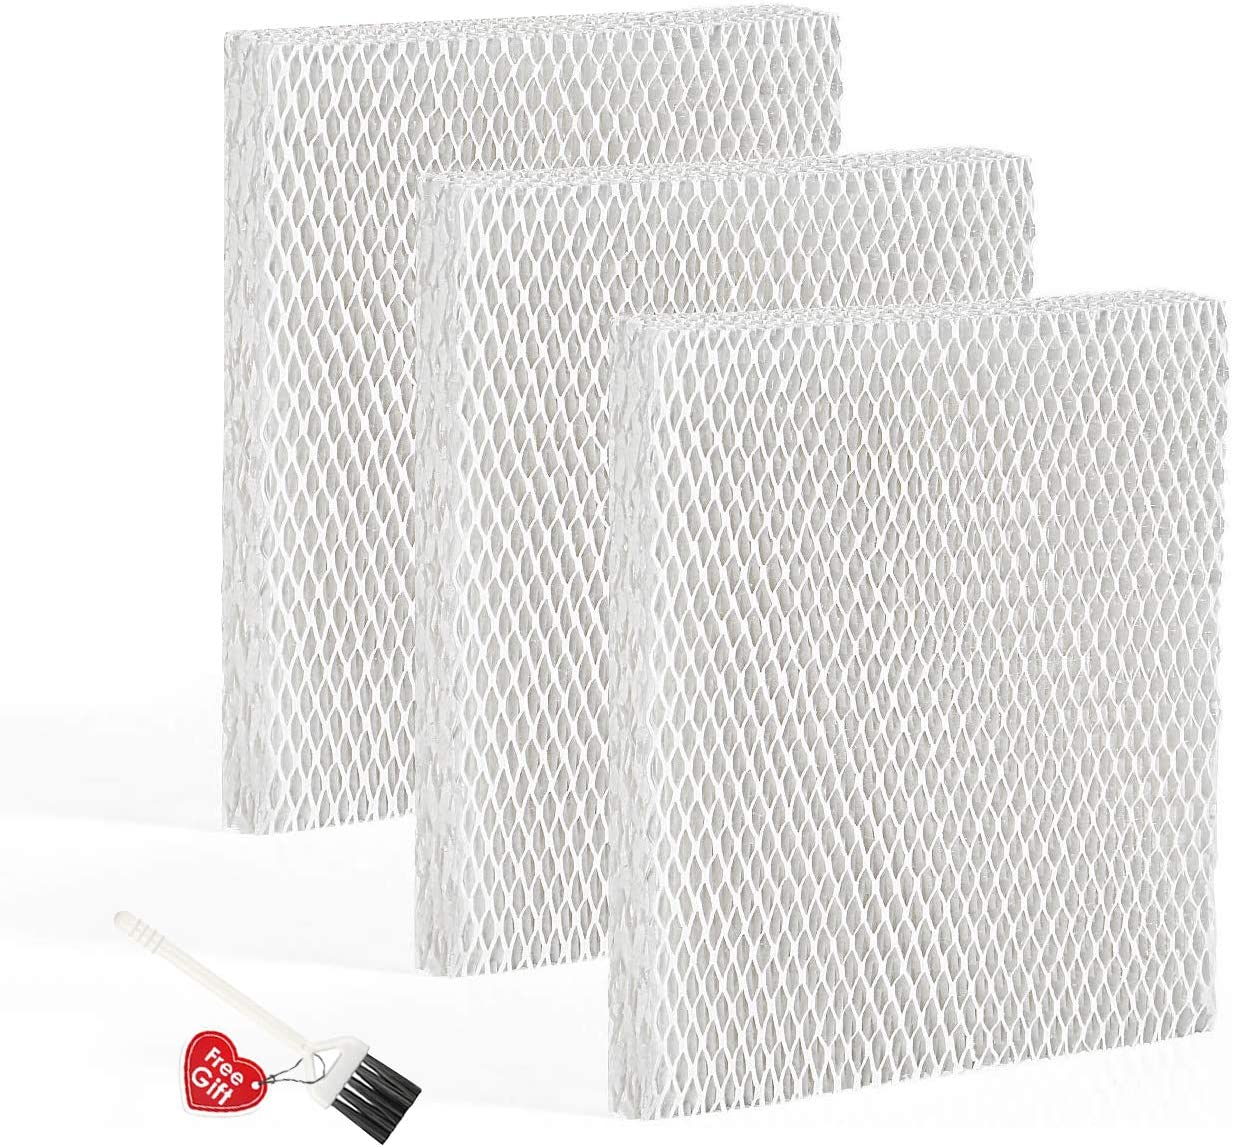 MXZONE Humidifier Replacement Filter T for Honeywell HEV615 and HEV620 Humidifier Wicks,Compatible with Part # HFT600 (3 Pack)